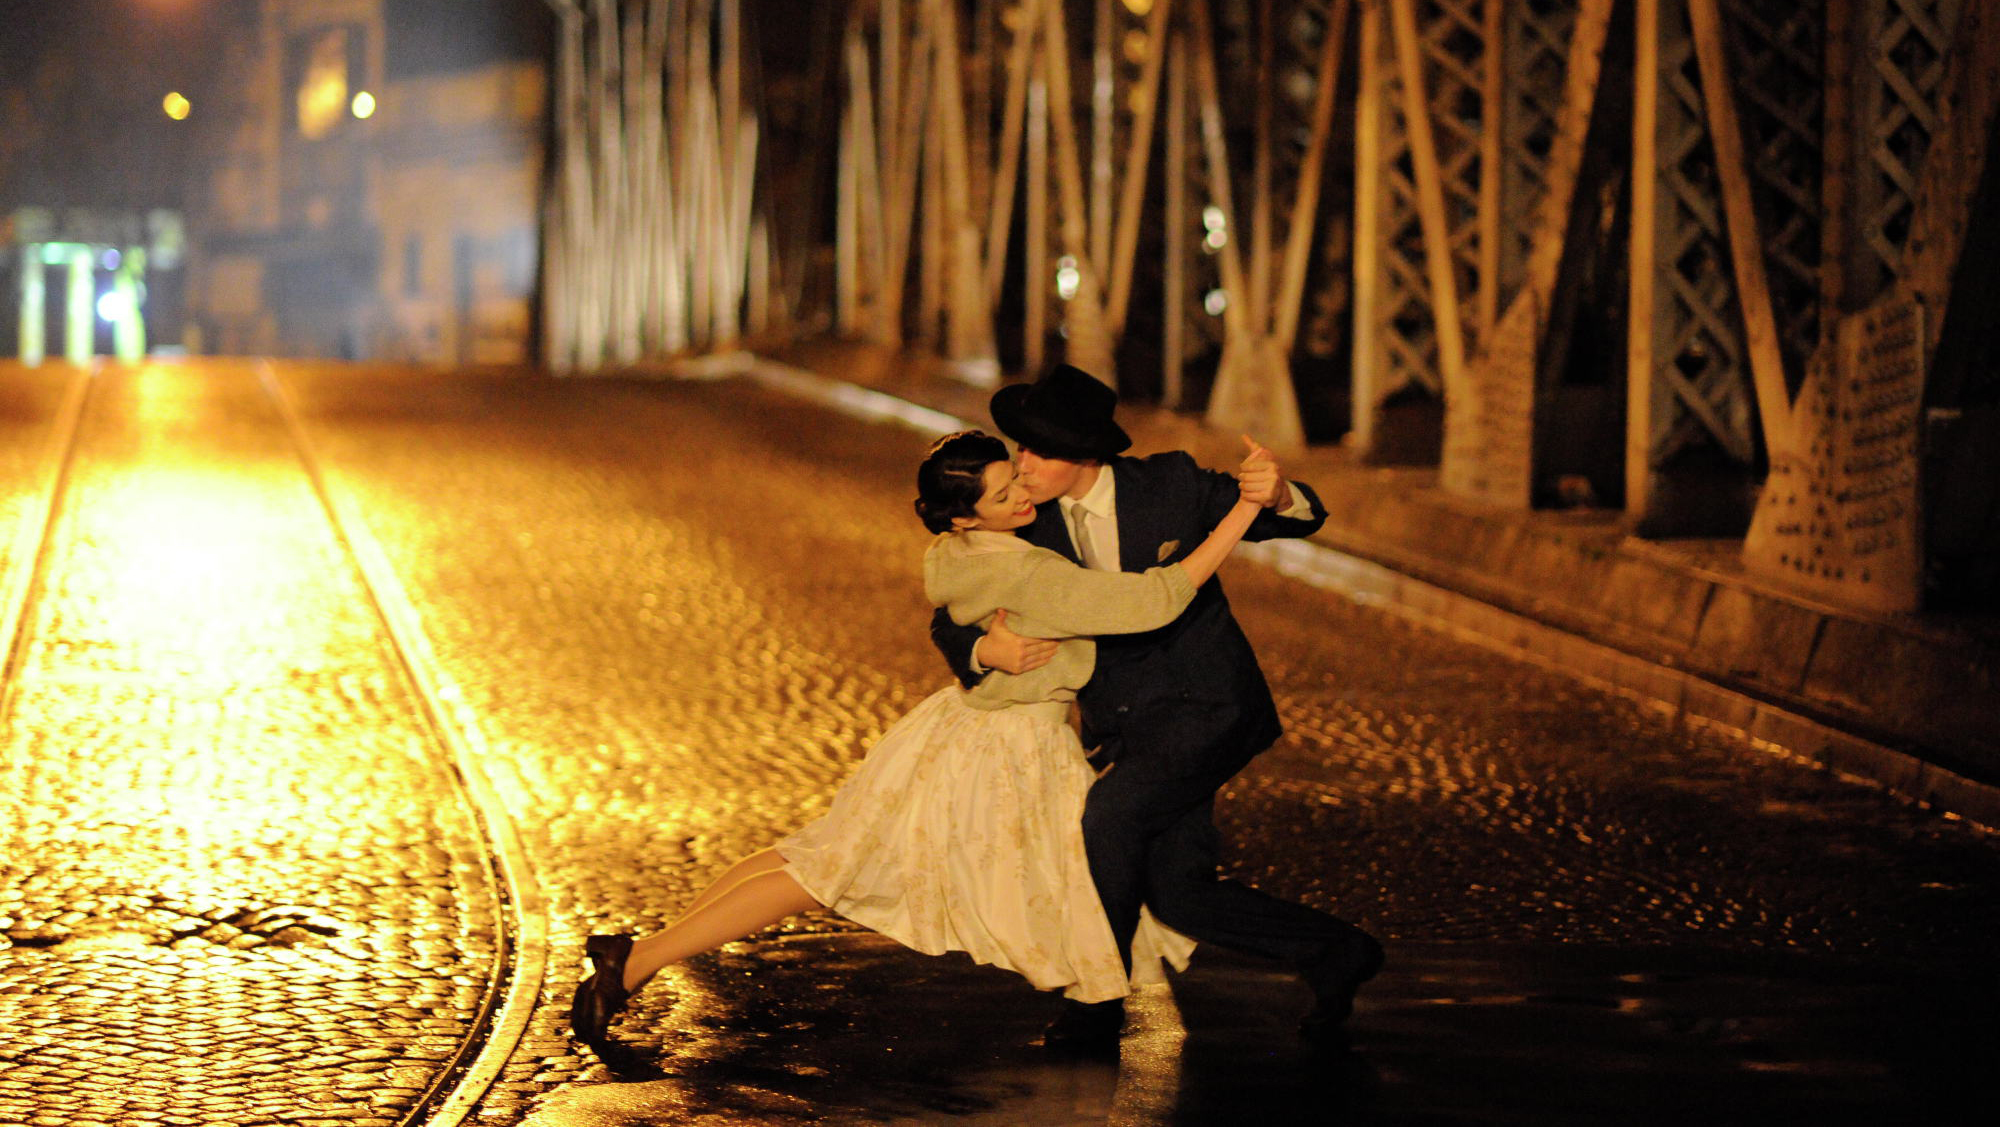 Our Last Tango - H 2015